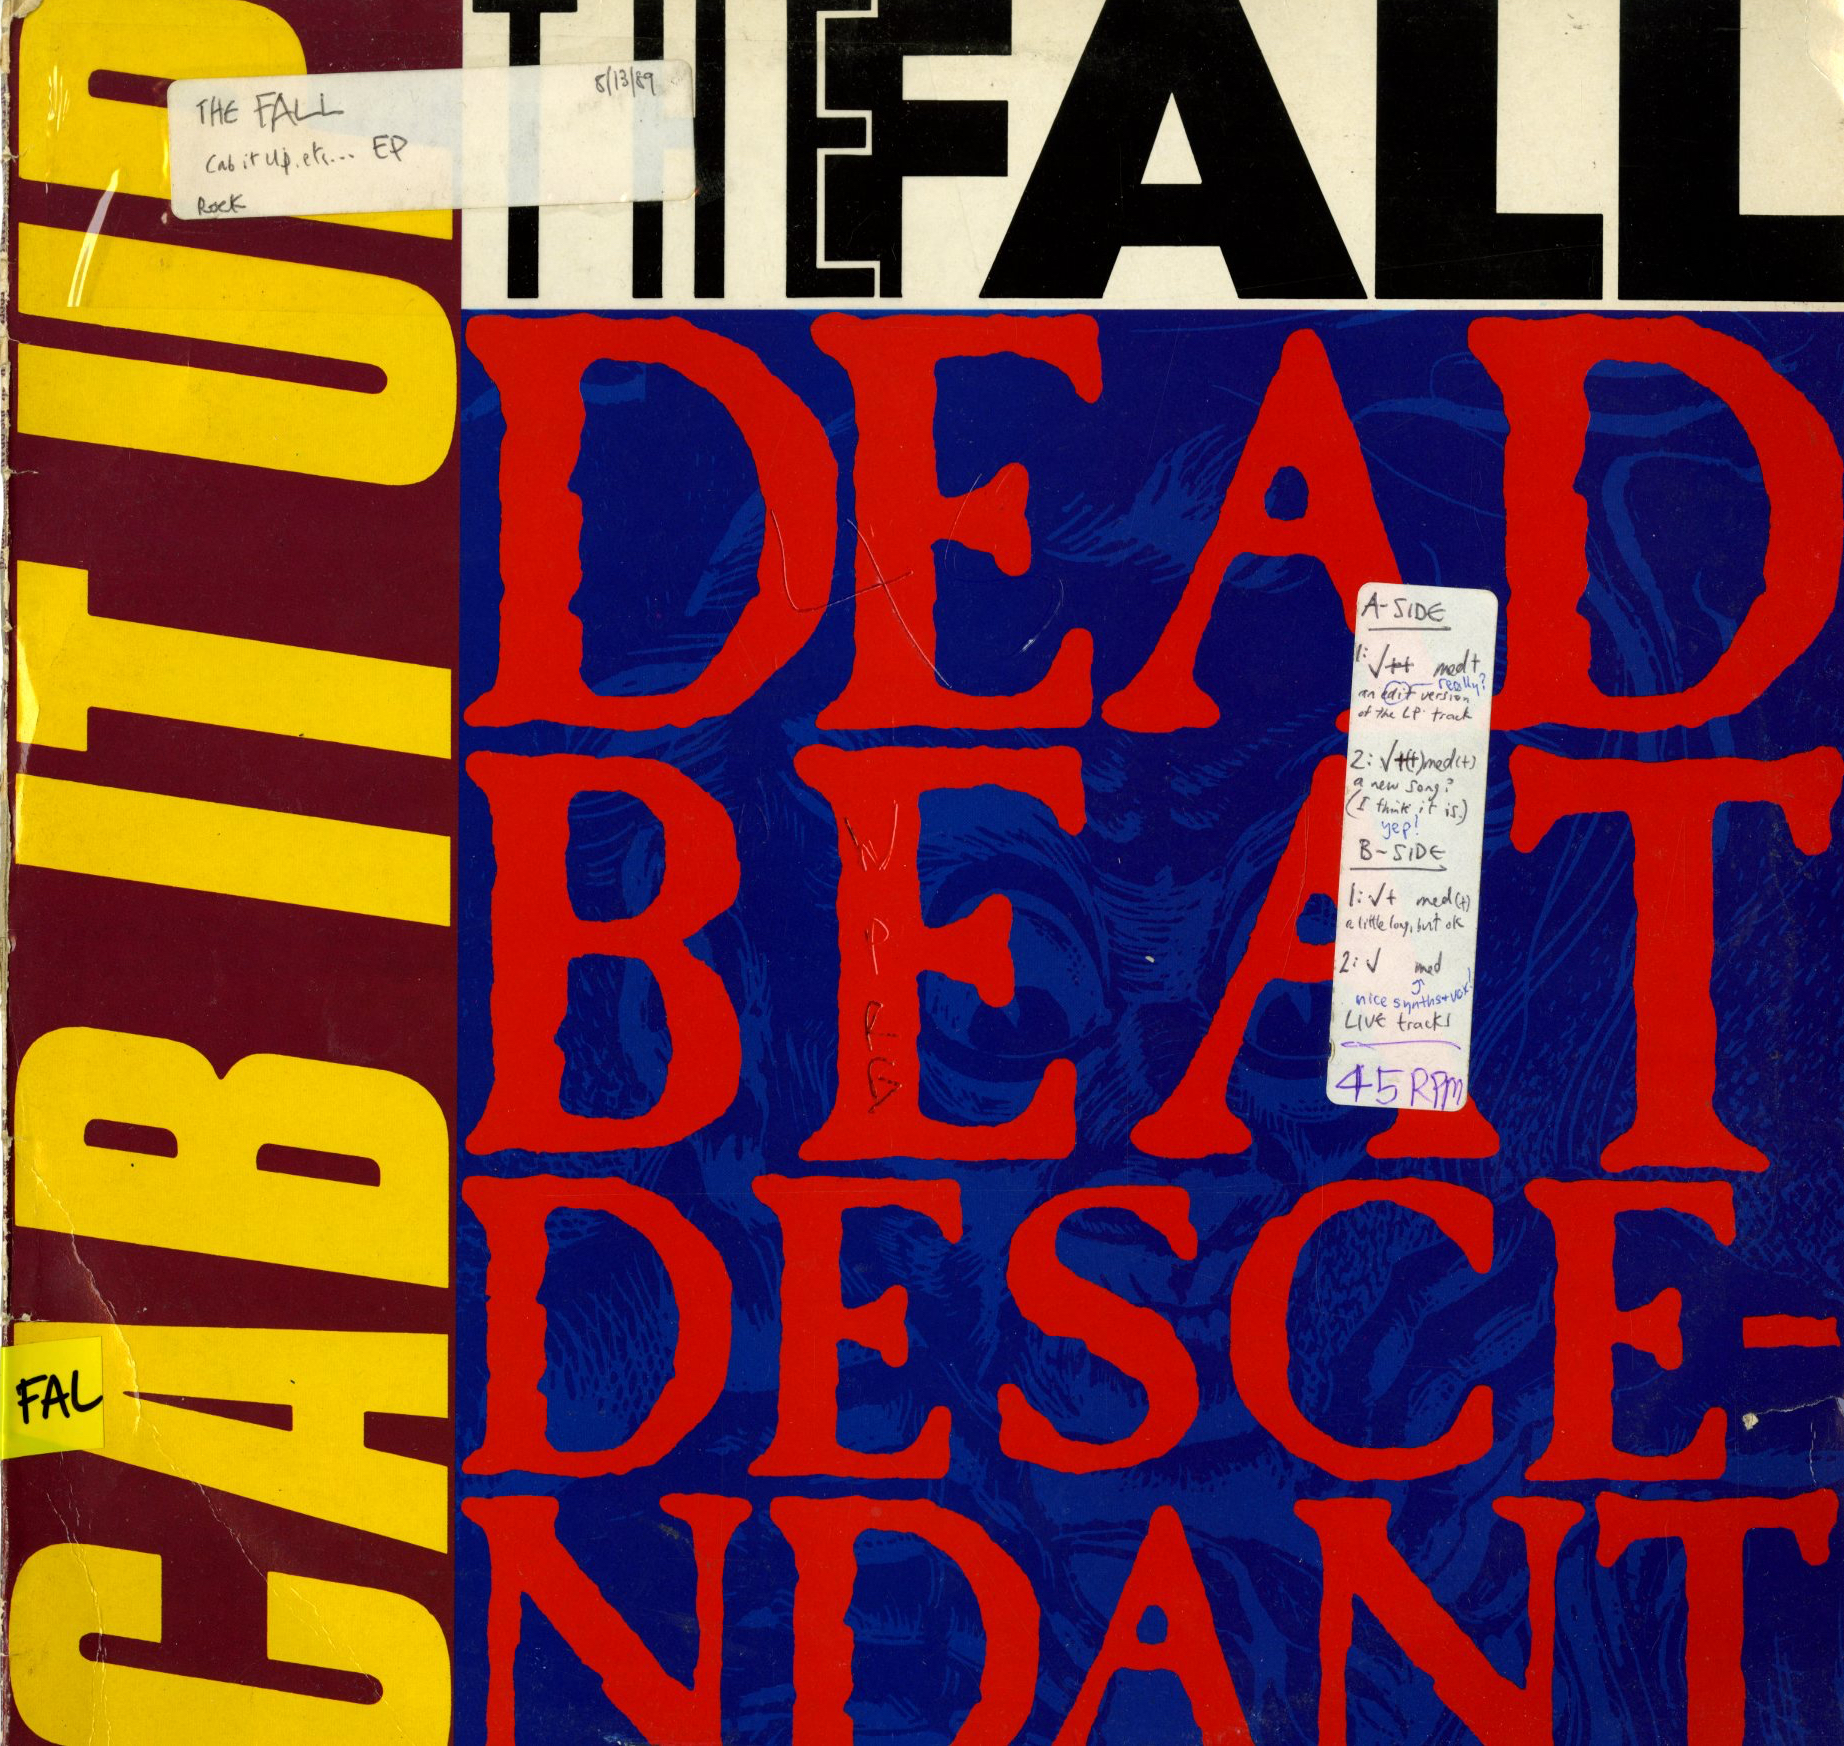 The_Fall_-_Dead_Beat_Descendent